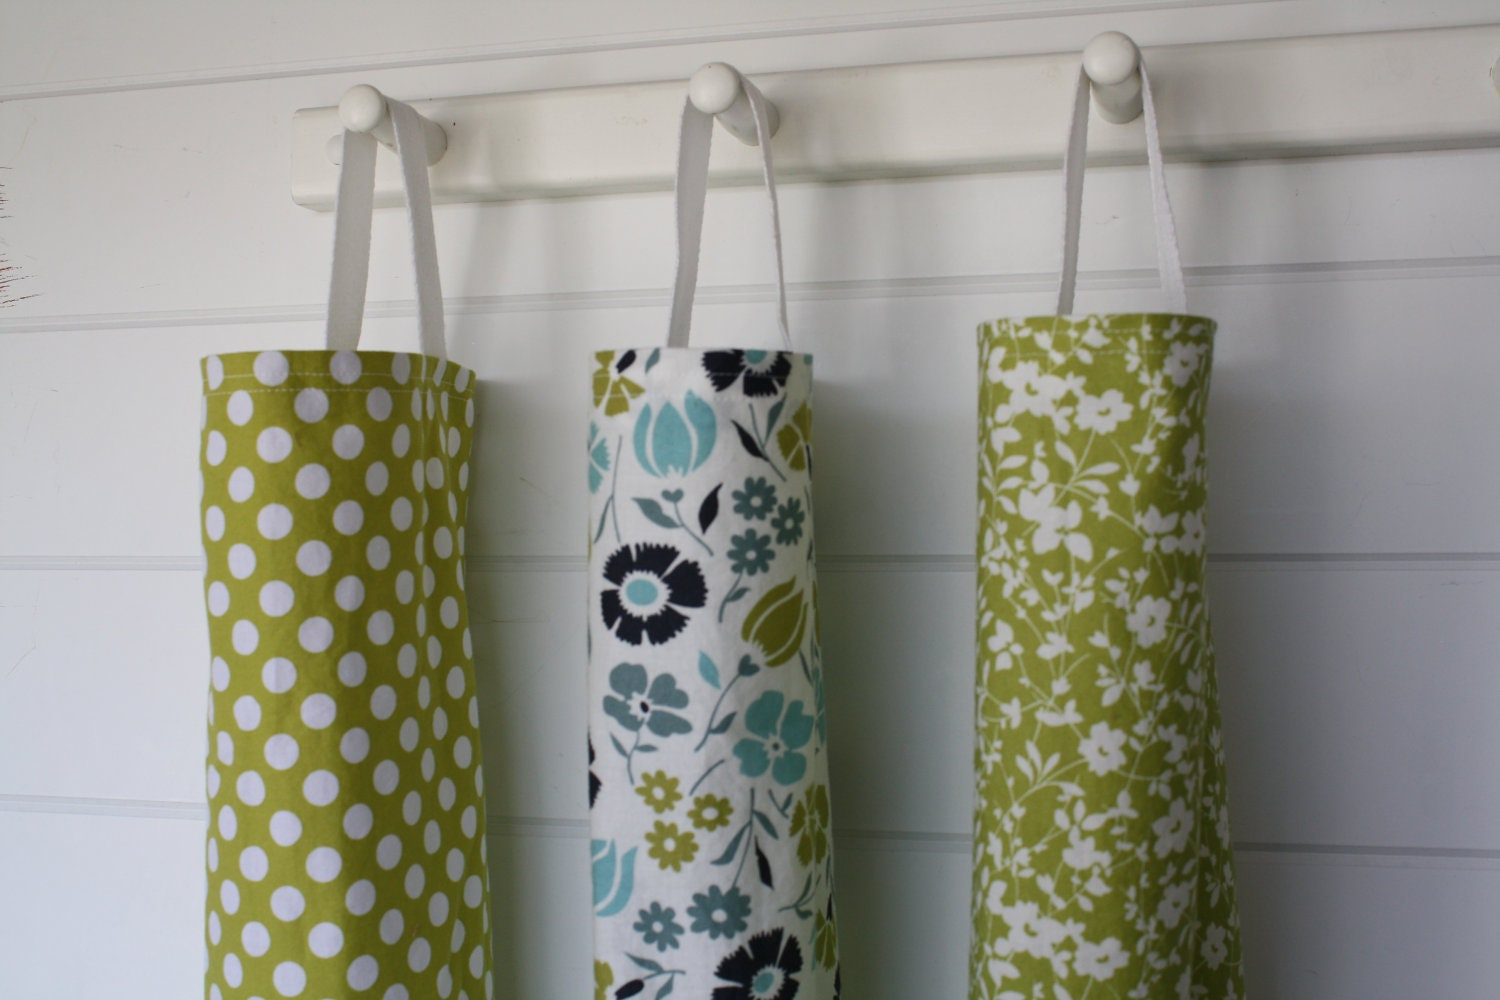 One plastic bag holder your pick of spring by